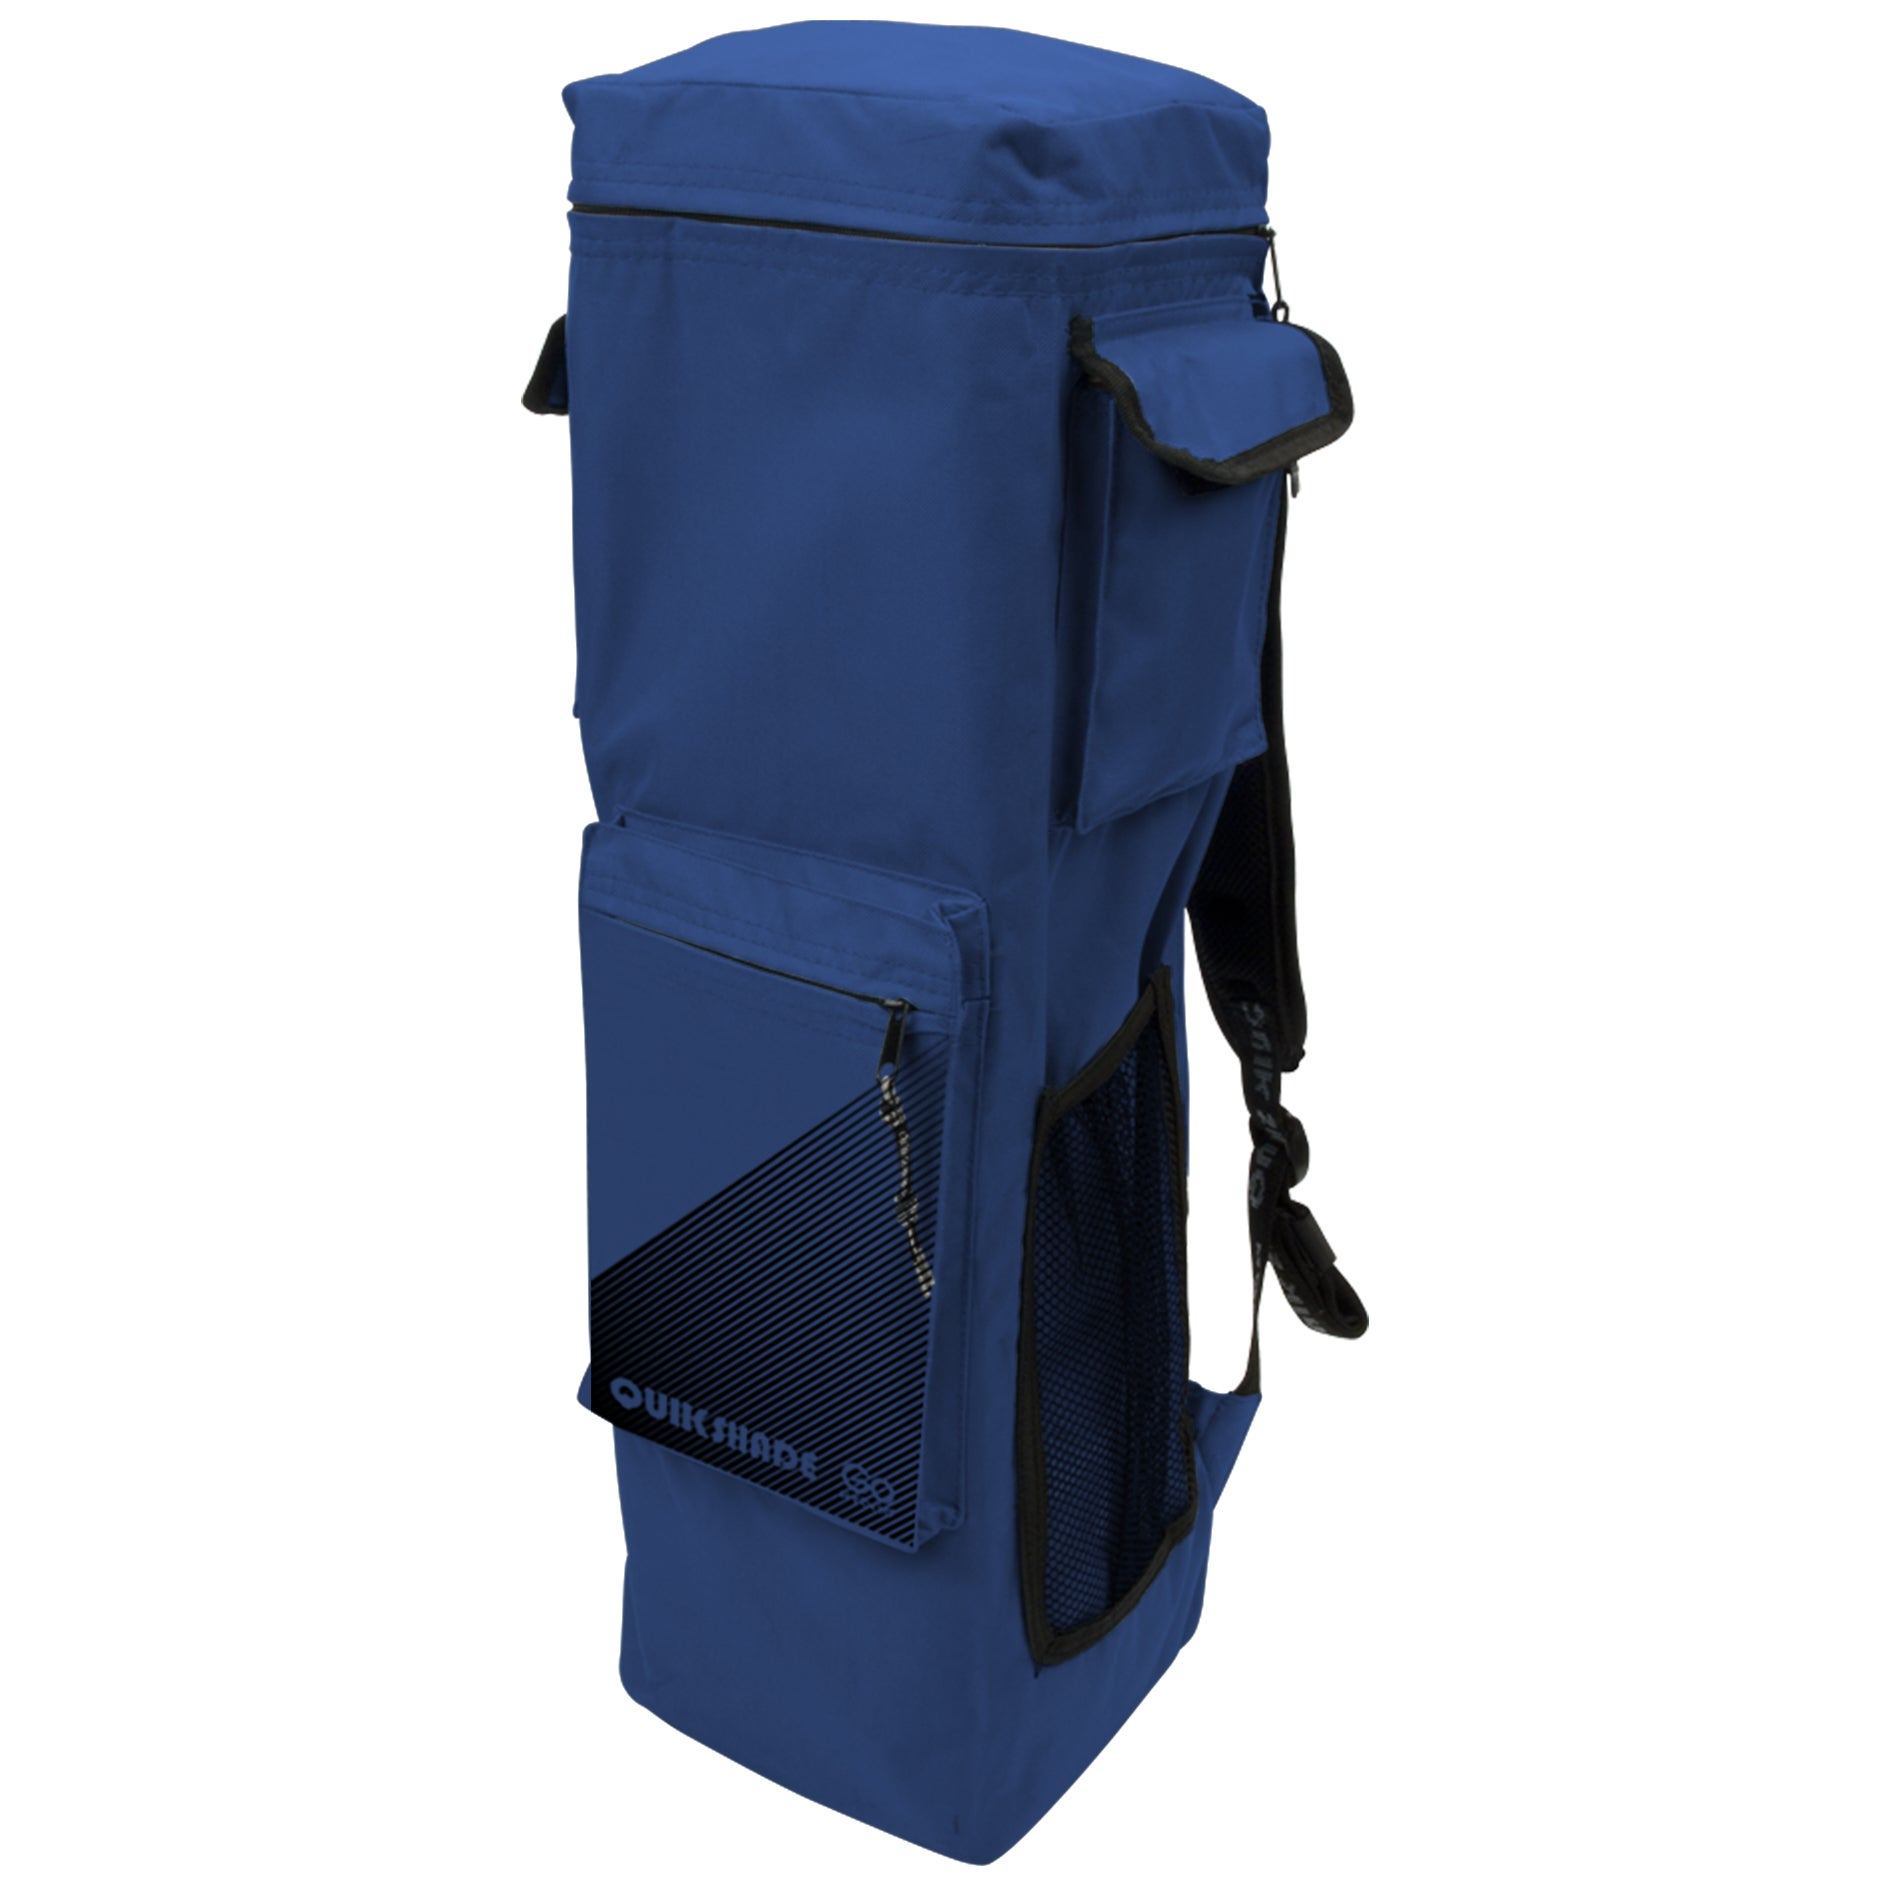 Quik Shade Compact Go Hybrid Slant Leg Backpack Canopy - Free Shipping Today - Overstock.com - 16947969  sc 1 st  Overstock.com & Quik Shade Compact Go Hybrid Slant Leg Backpack Canopy - Free ...